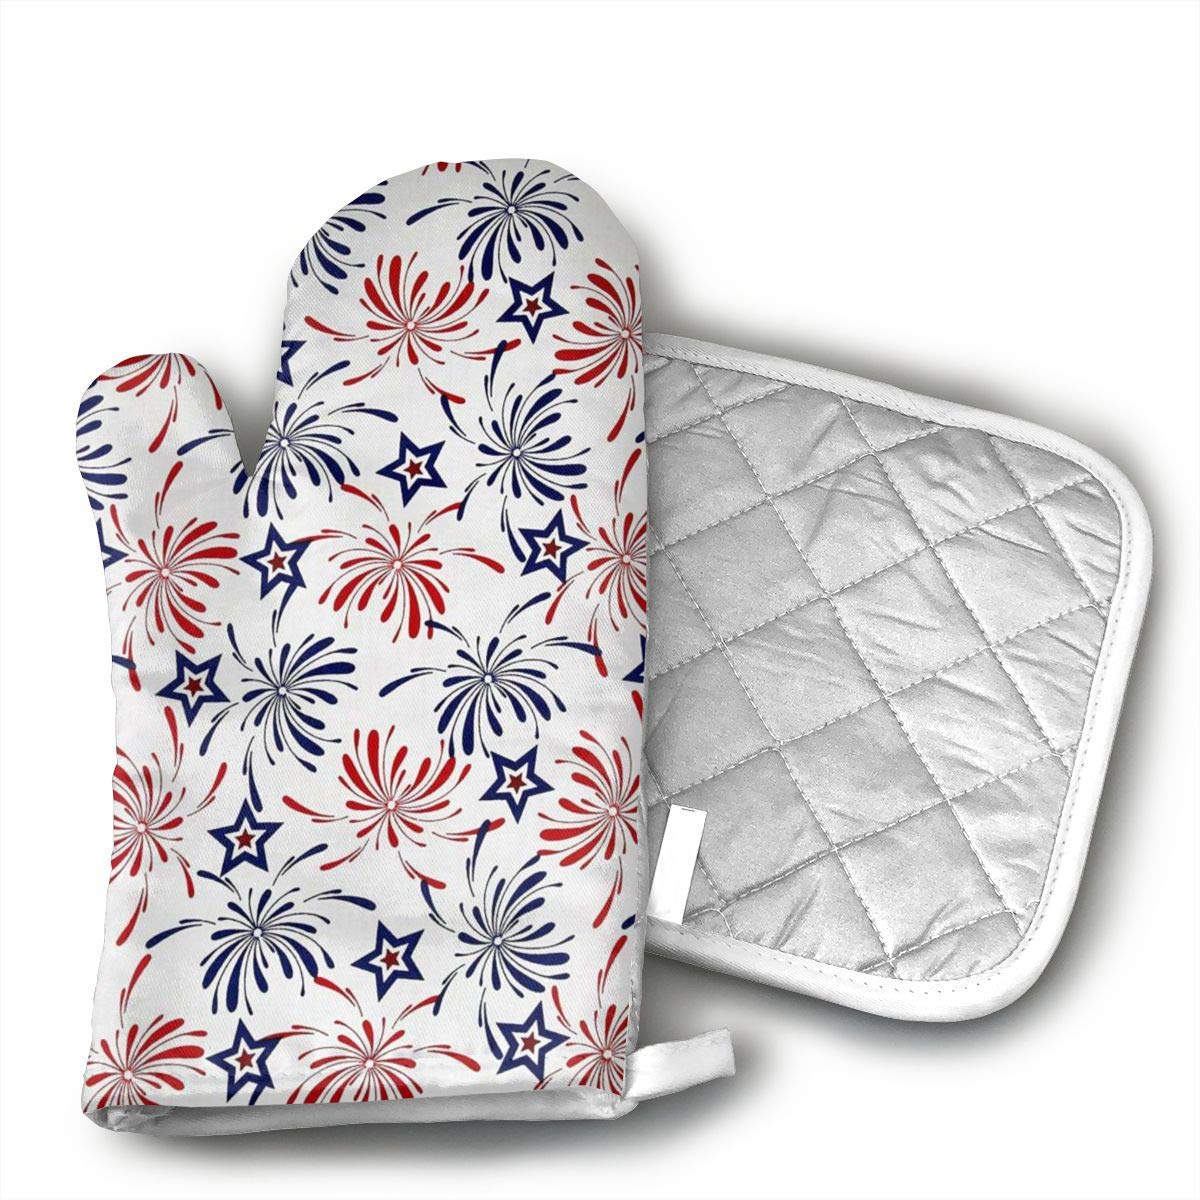 CQHMJ Patriotic Prints Oven Mitts Cooking Gloves Heat Resistant, for Kitchen Oven BBQ Grill and Fire Pits for Cooking Baking,